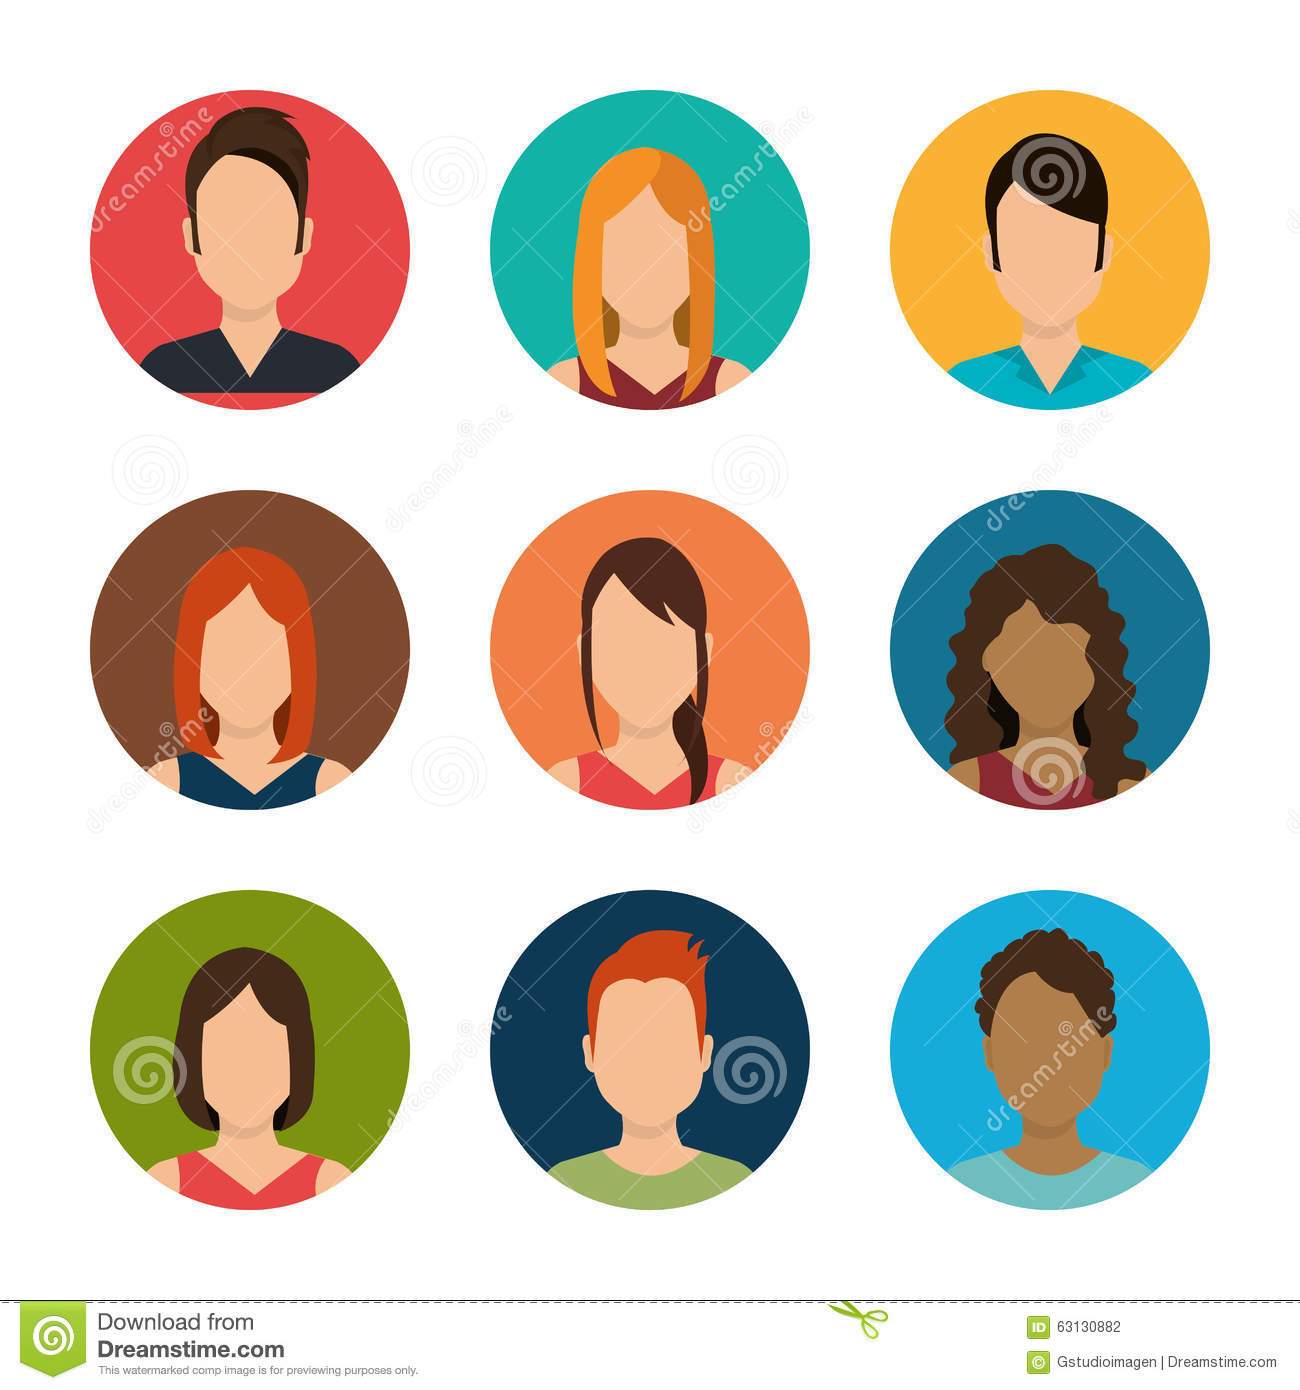 young people avatar silhouette stock vector illustration